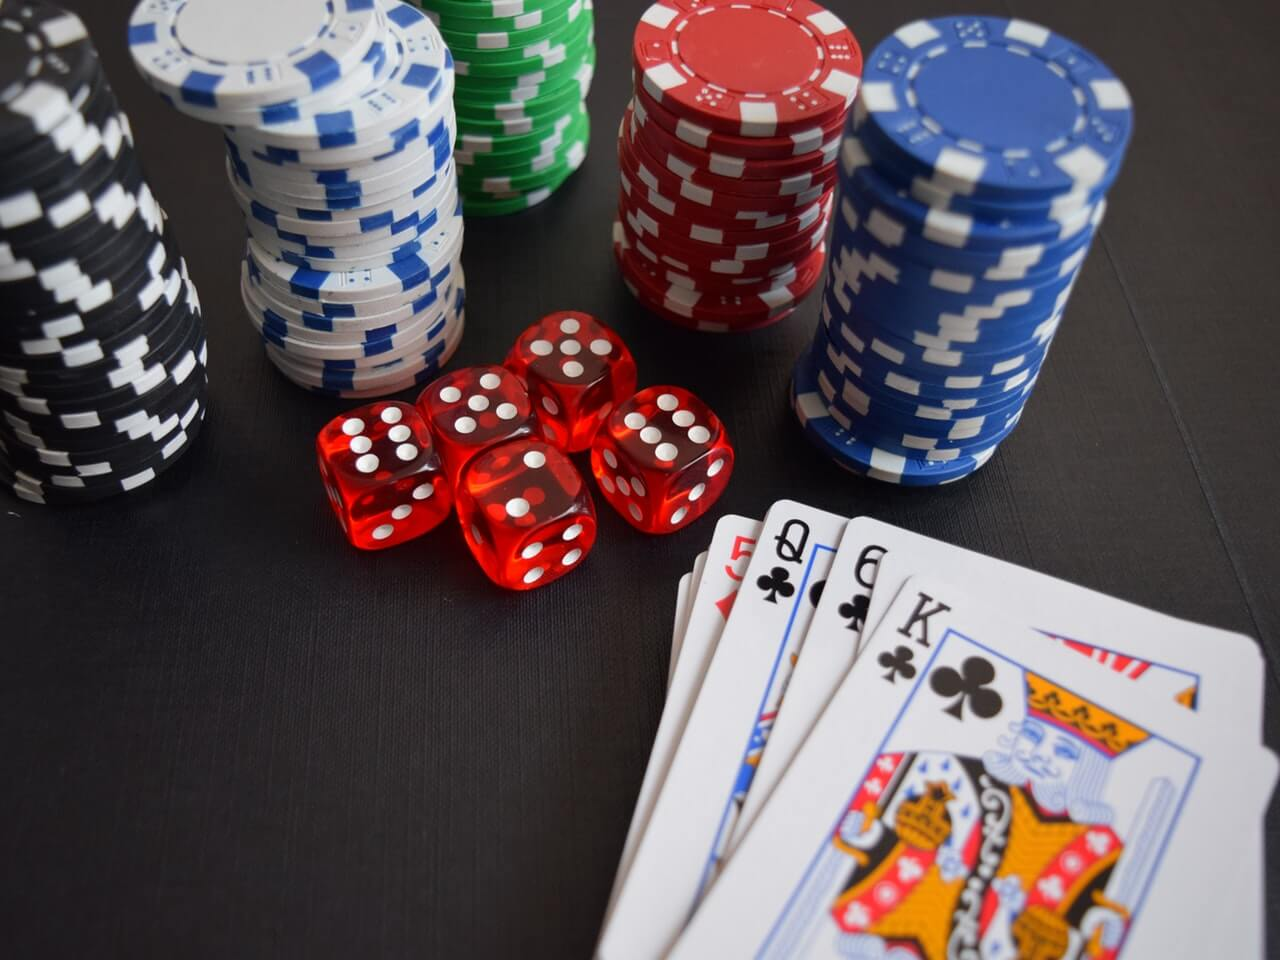 Gambling on credit cards to be banned